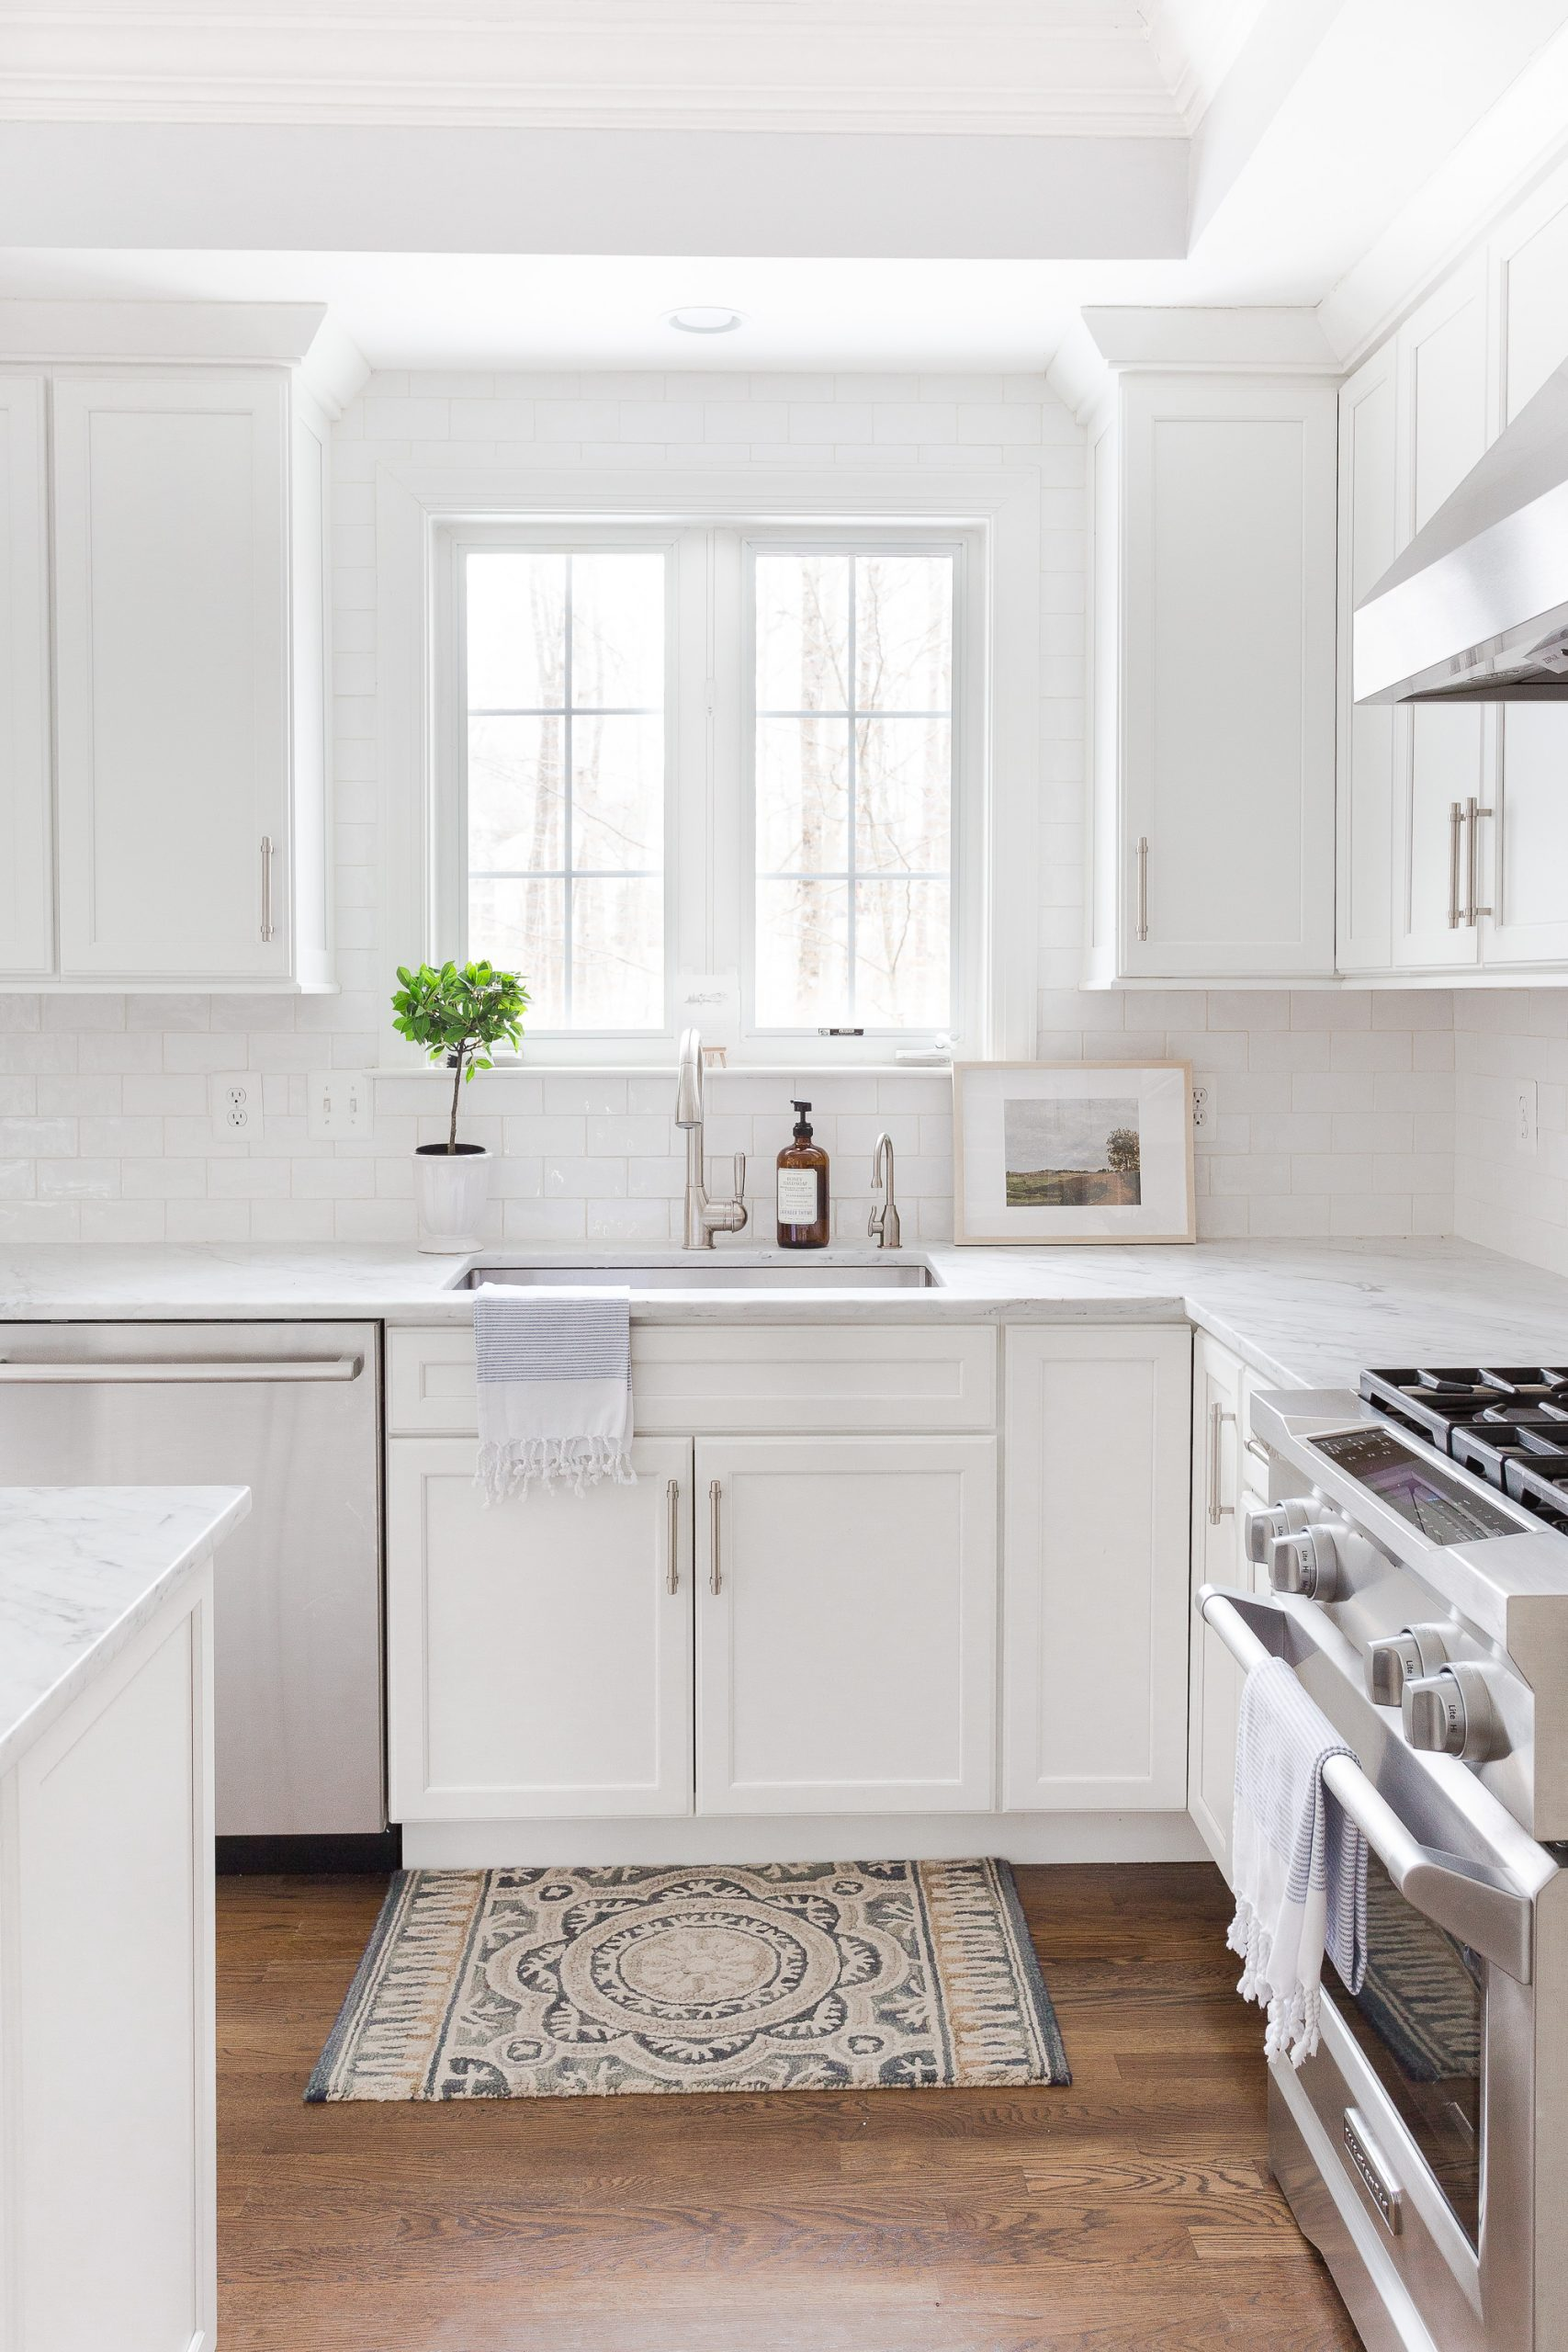 white kitchen and sink Mistakes to Avoid When Selling Your Home